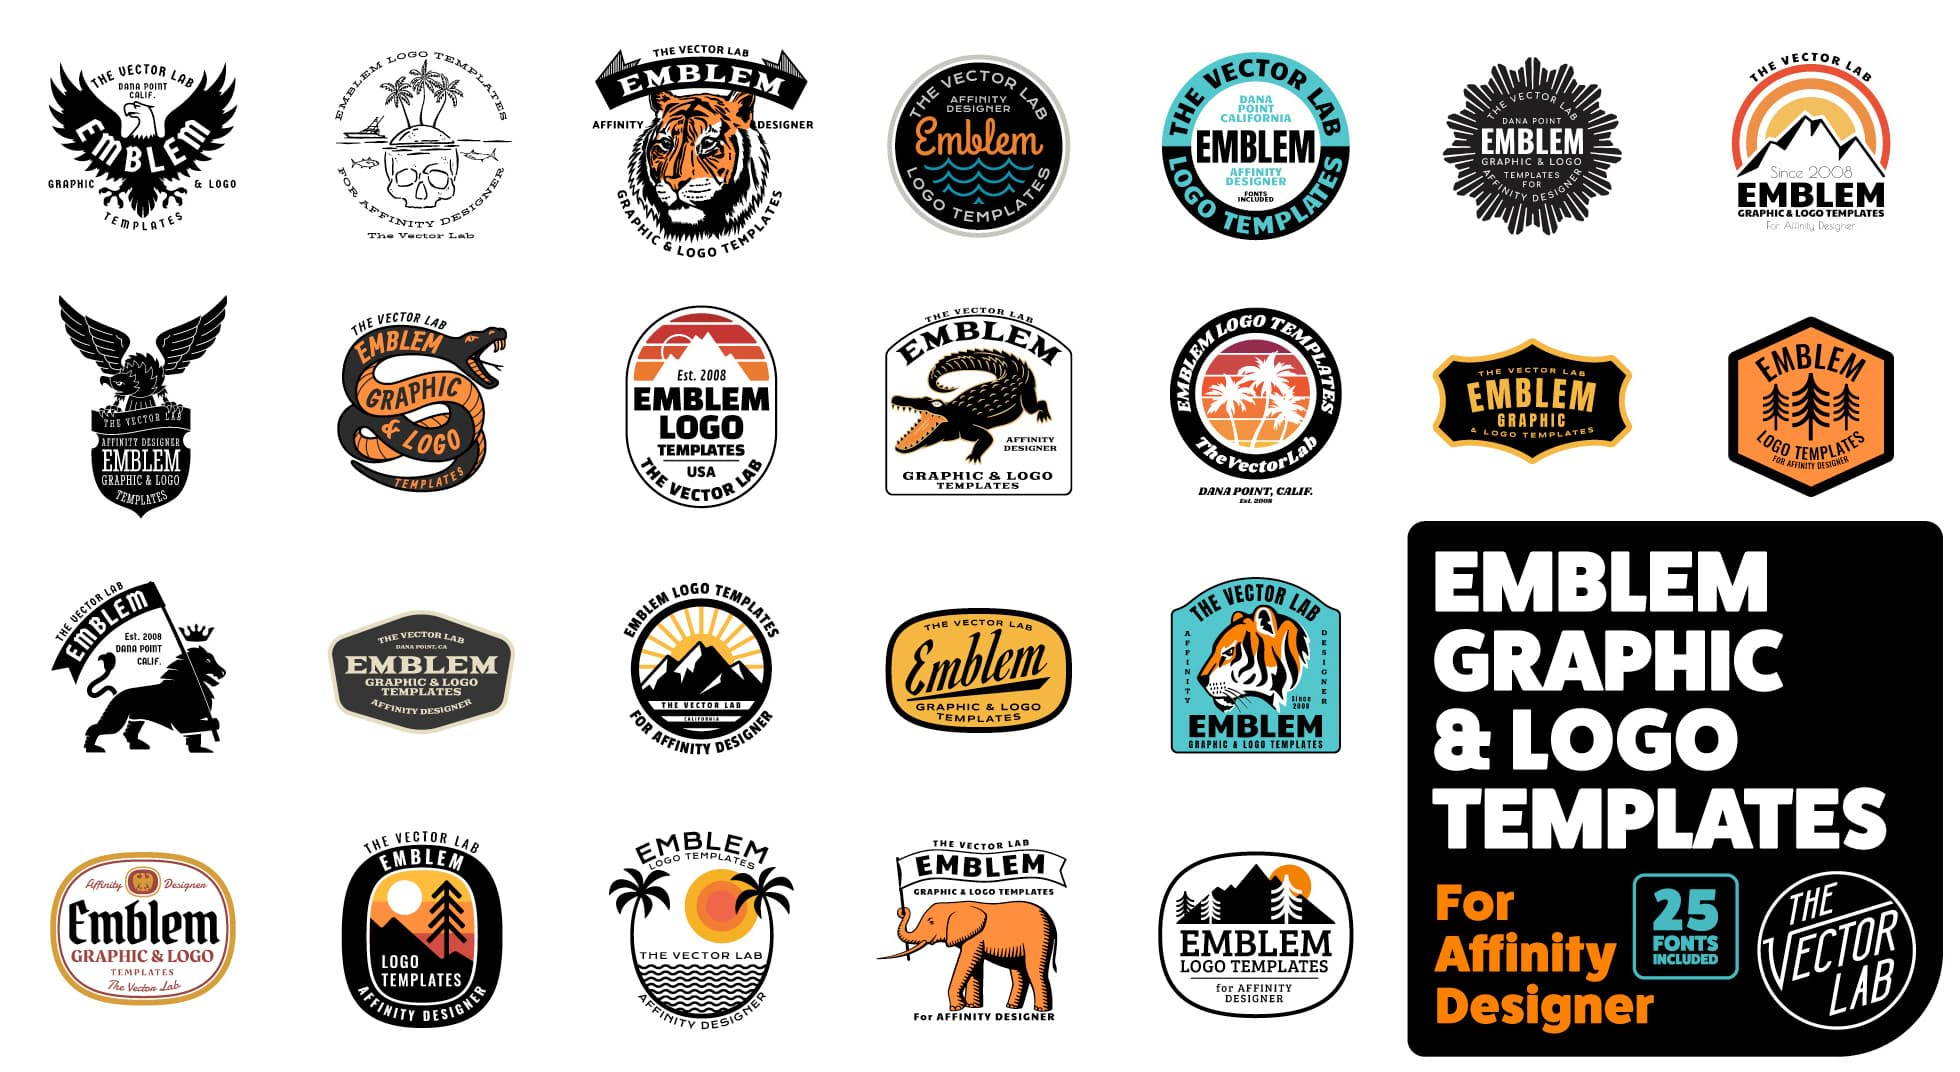 Emblem Graphic & Logo Templates by TheVectorLab.